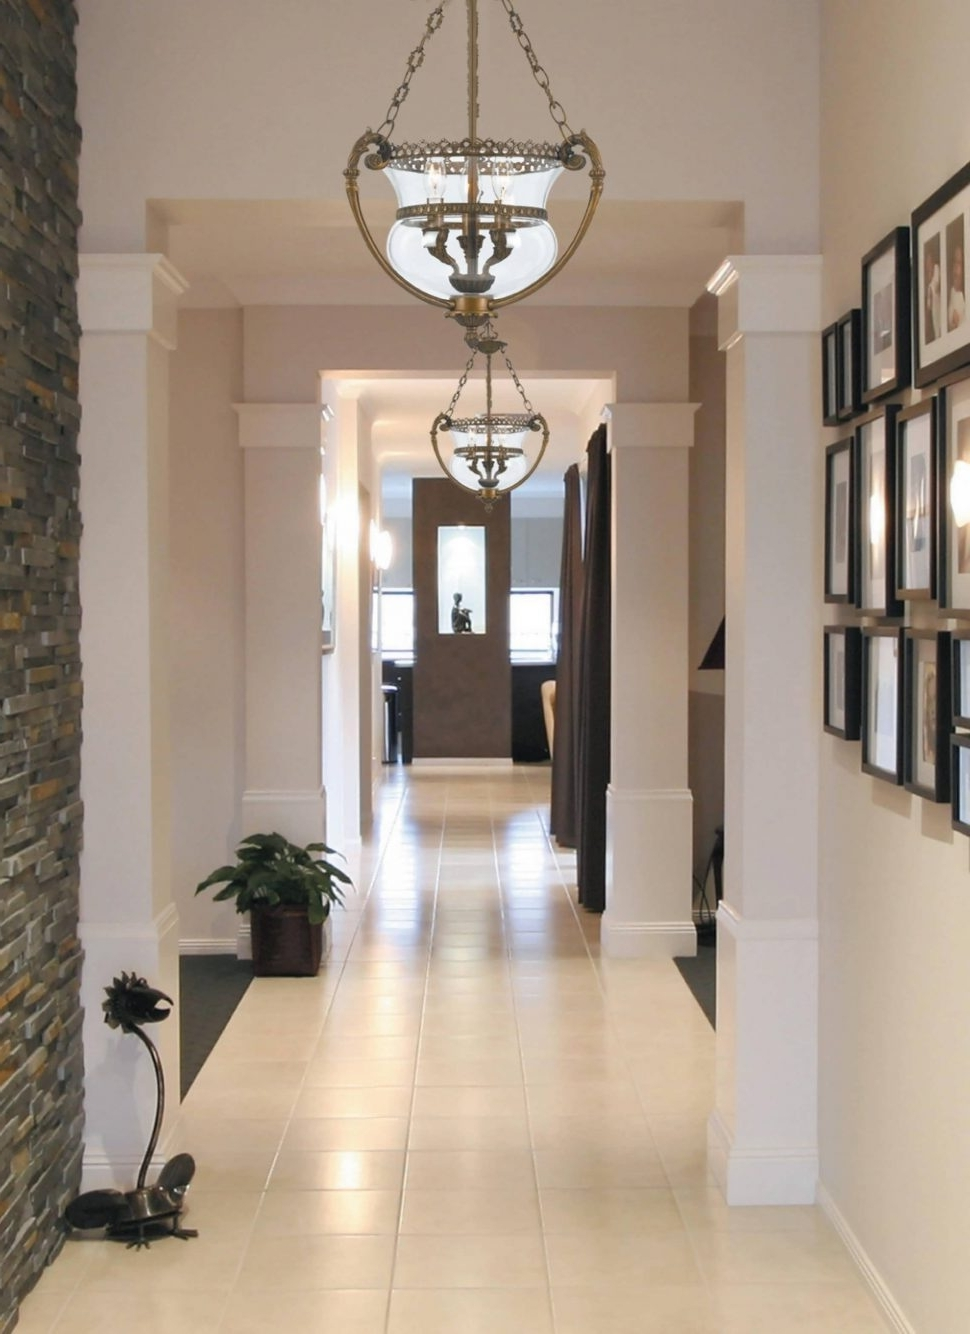 Outdoor Entrance Ceiling Lights With Trendy Light : White Chandelier Outdoor Foyer Lighting Ceiling Lights (View 10 of 20)